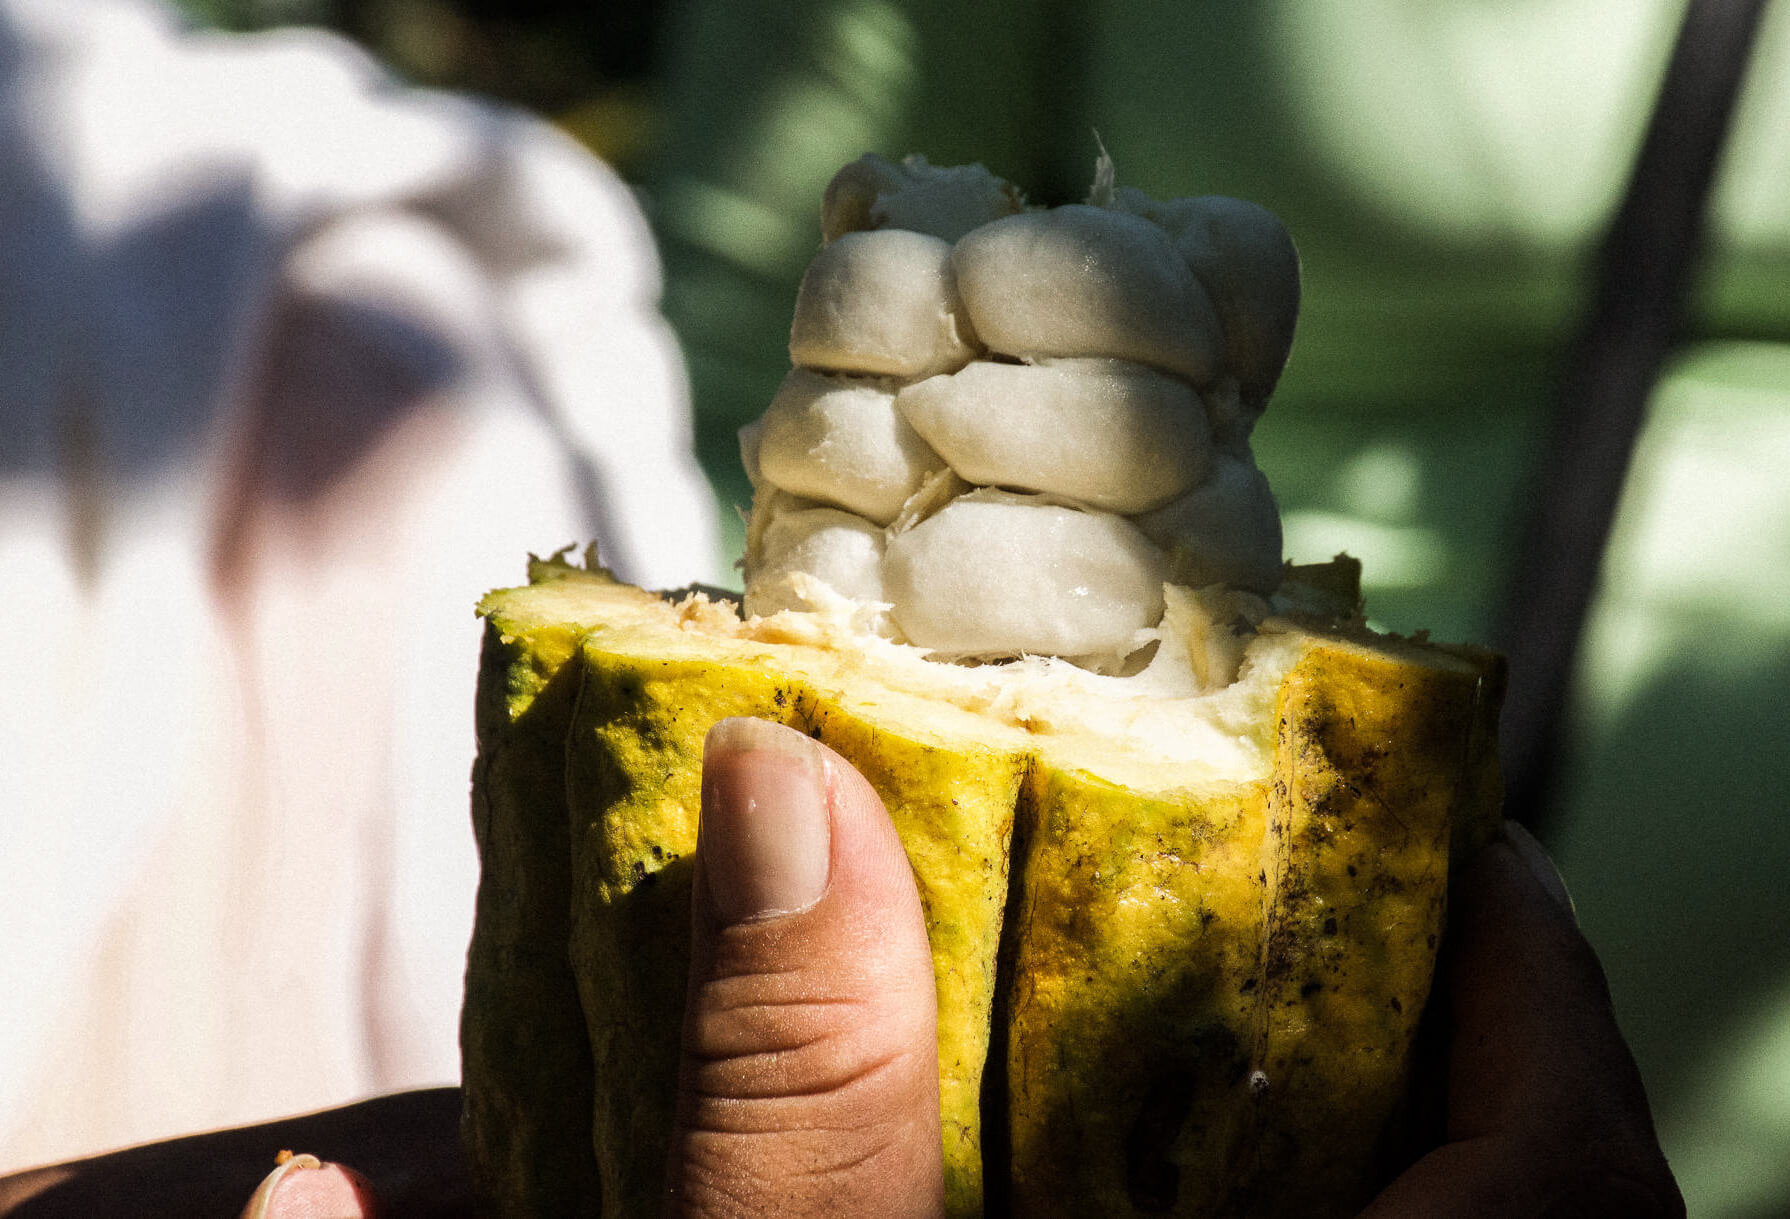 Someone holding a yellow fruit with the edible portion sticking out - Cocoa bean fruit